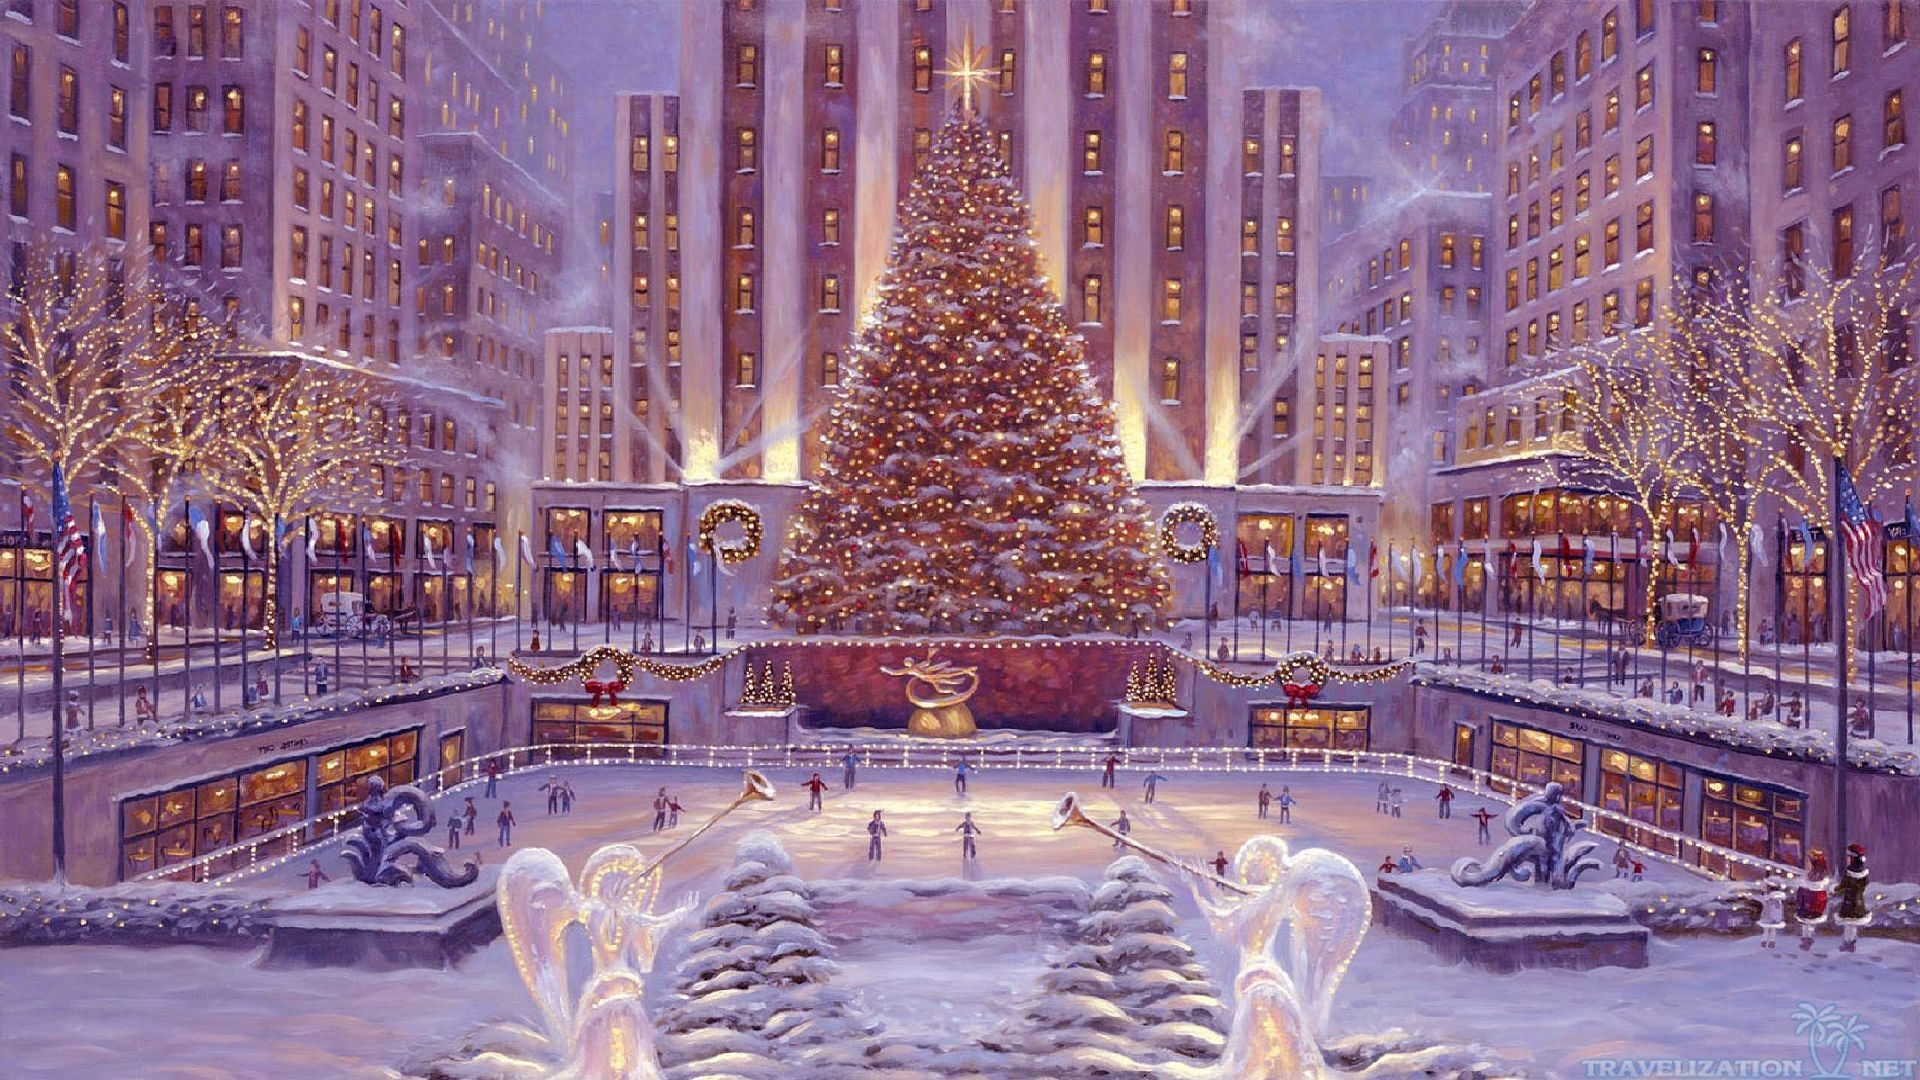 … 2560×1920. Arriving Winter Christmas Wallpapers